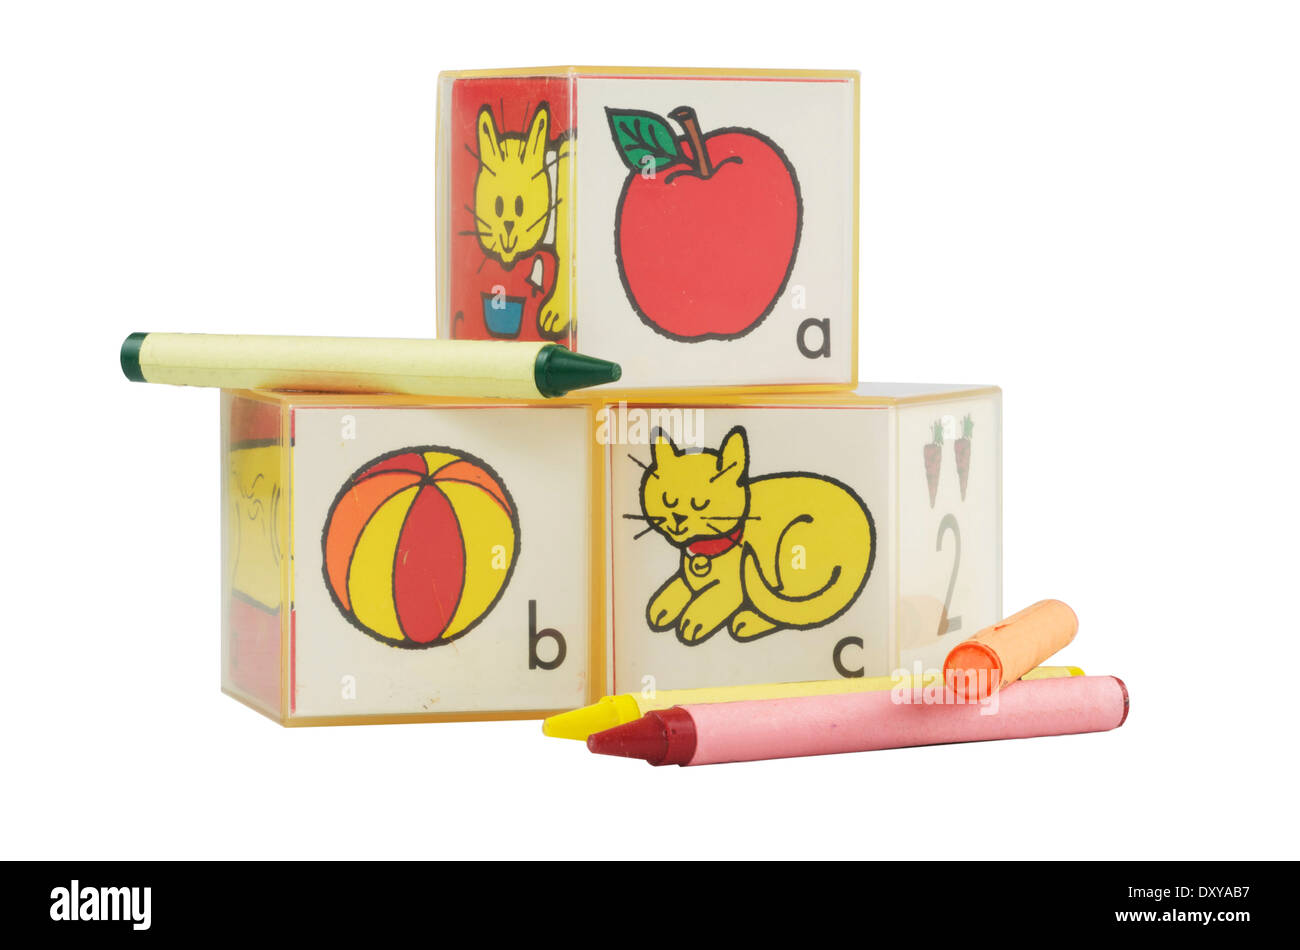 Preschool plastic learning blocks,ABC's with crayons. - Stock Image